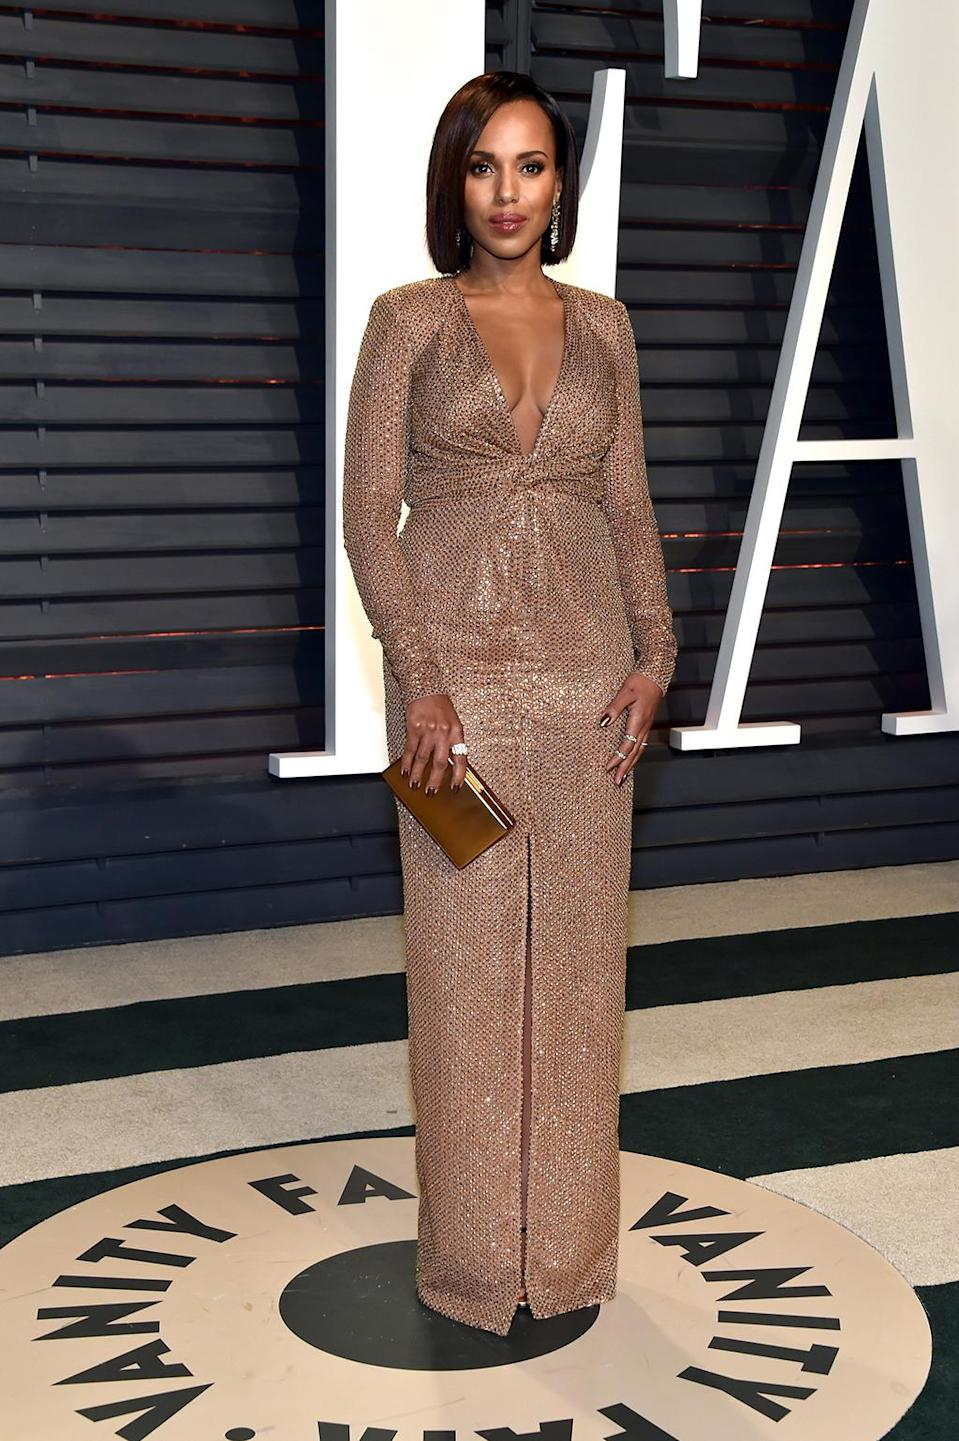 <p>Kerry Washington attends the 2017 Vanity Fair Oscar Party hosted by Graydon Carter at Wallis Annenberg Center for the Performing Arts on February 26, 2017 in Beverly Hills, California. (Photo by Pascal Le Segretain/Getty Images) </p>